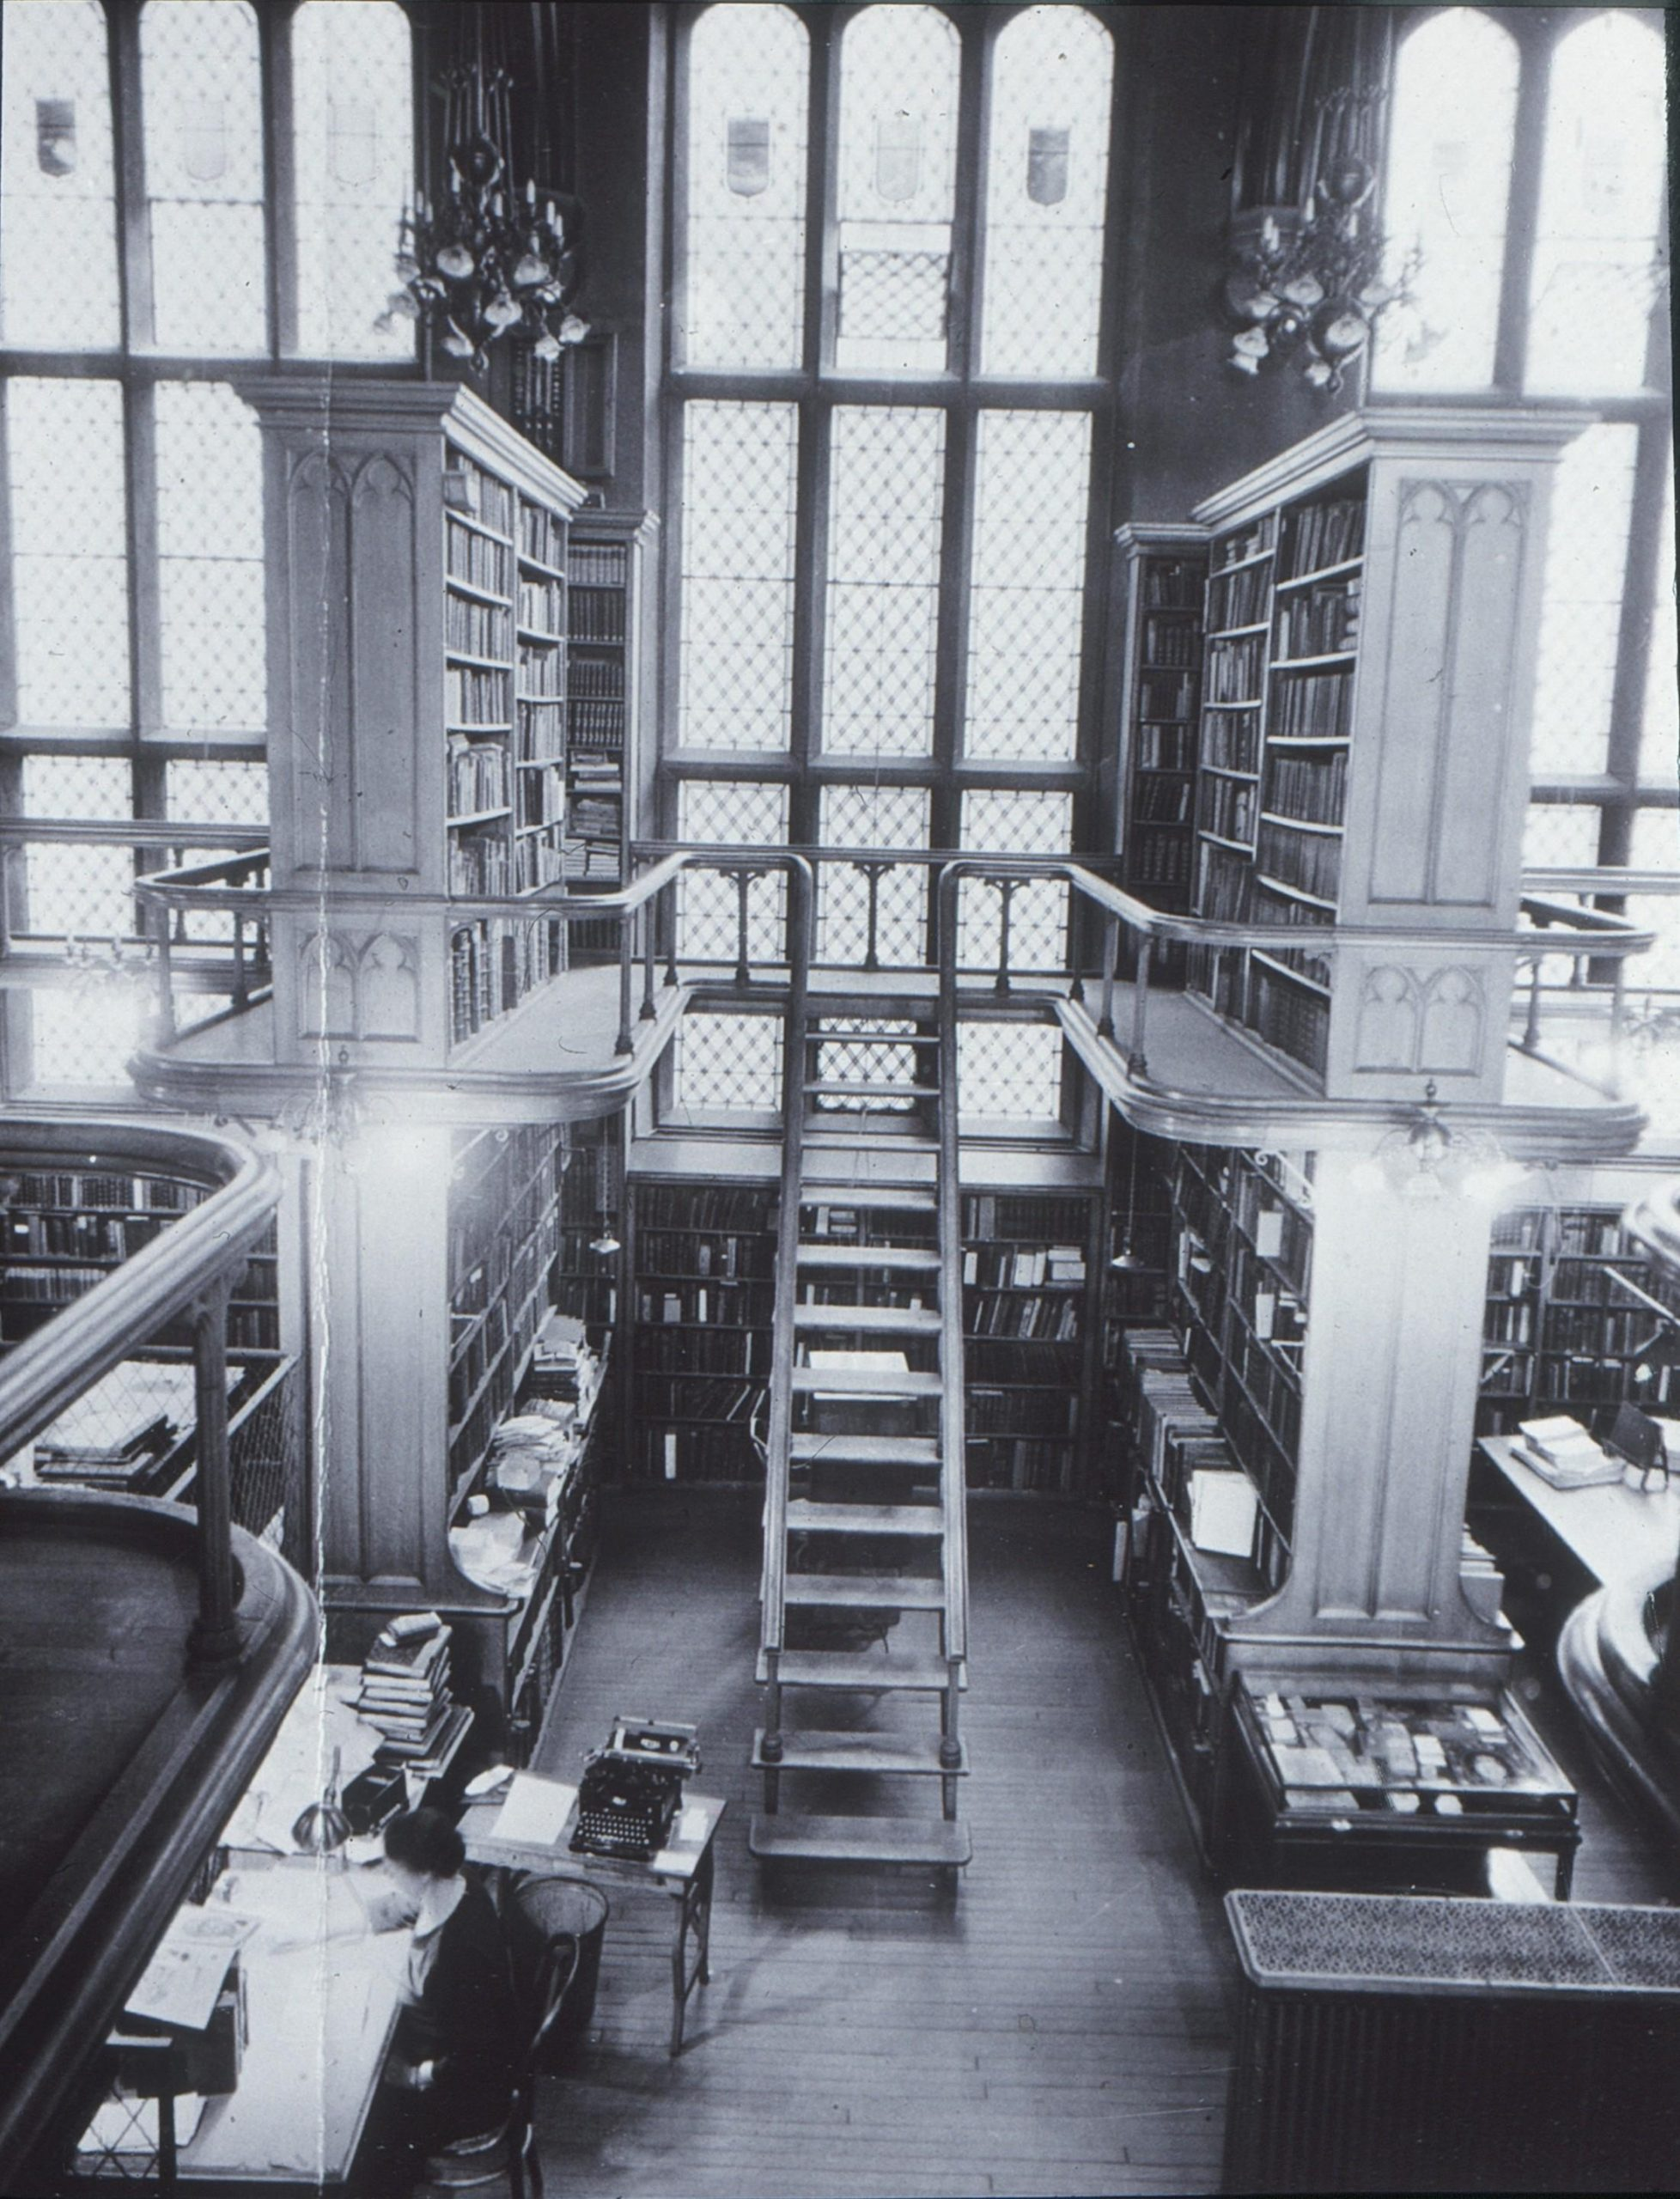 Photograph of the interior view of Watkinson Library Reading Room and book stacks